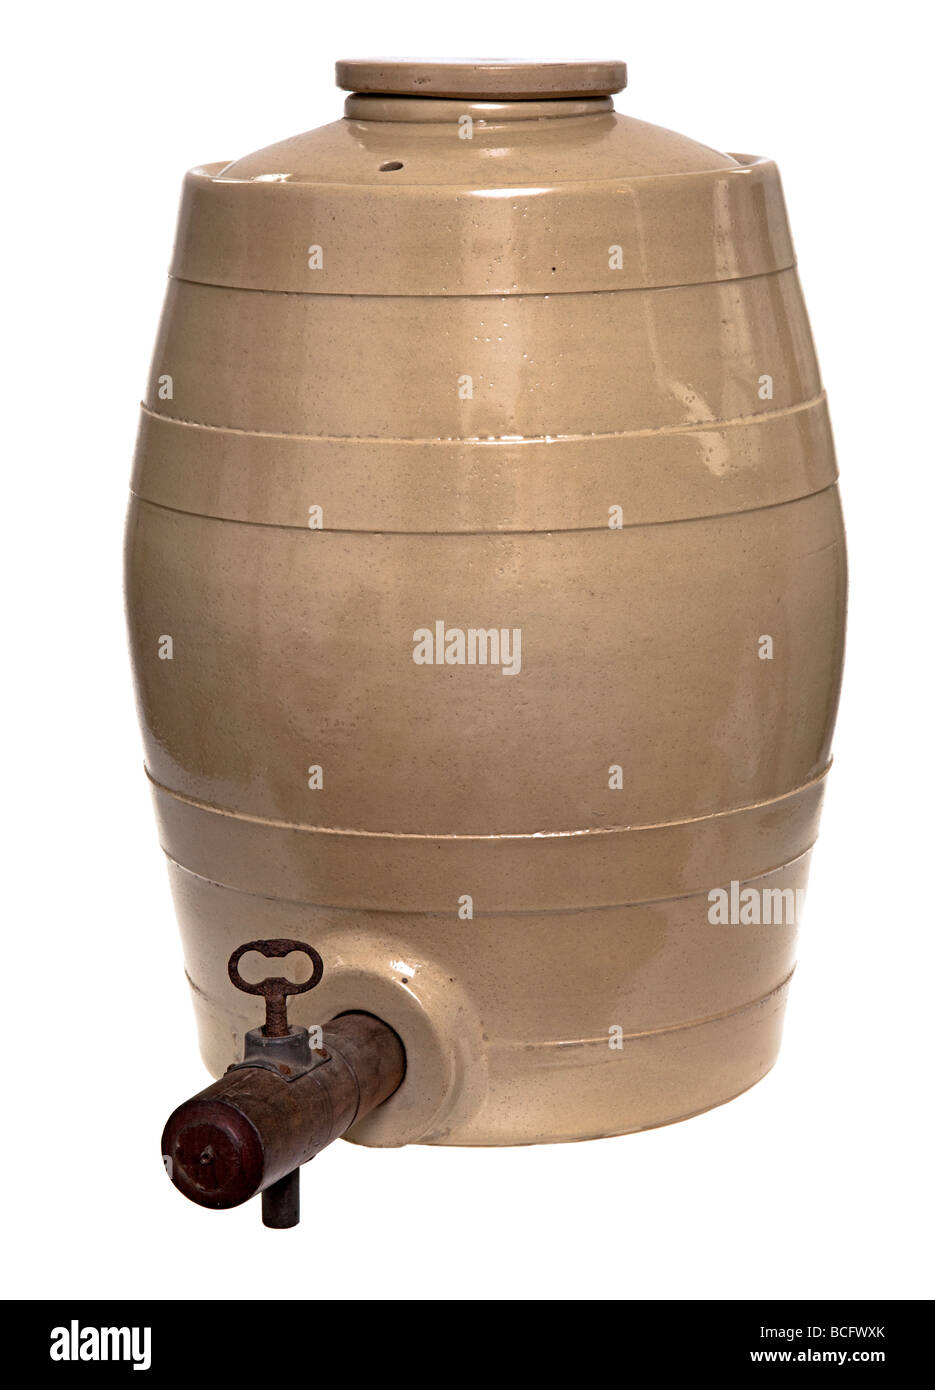 Antique c1900 ceramic barrel for beer or wine with wooden tap UK - Stock Image